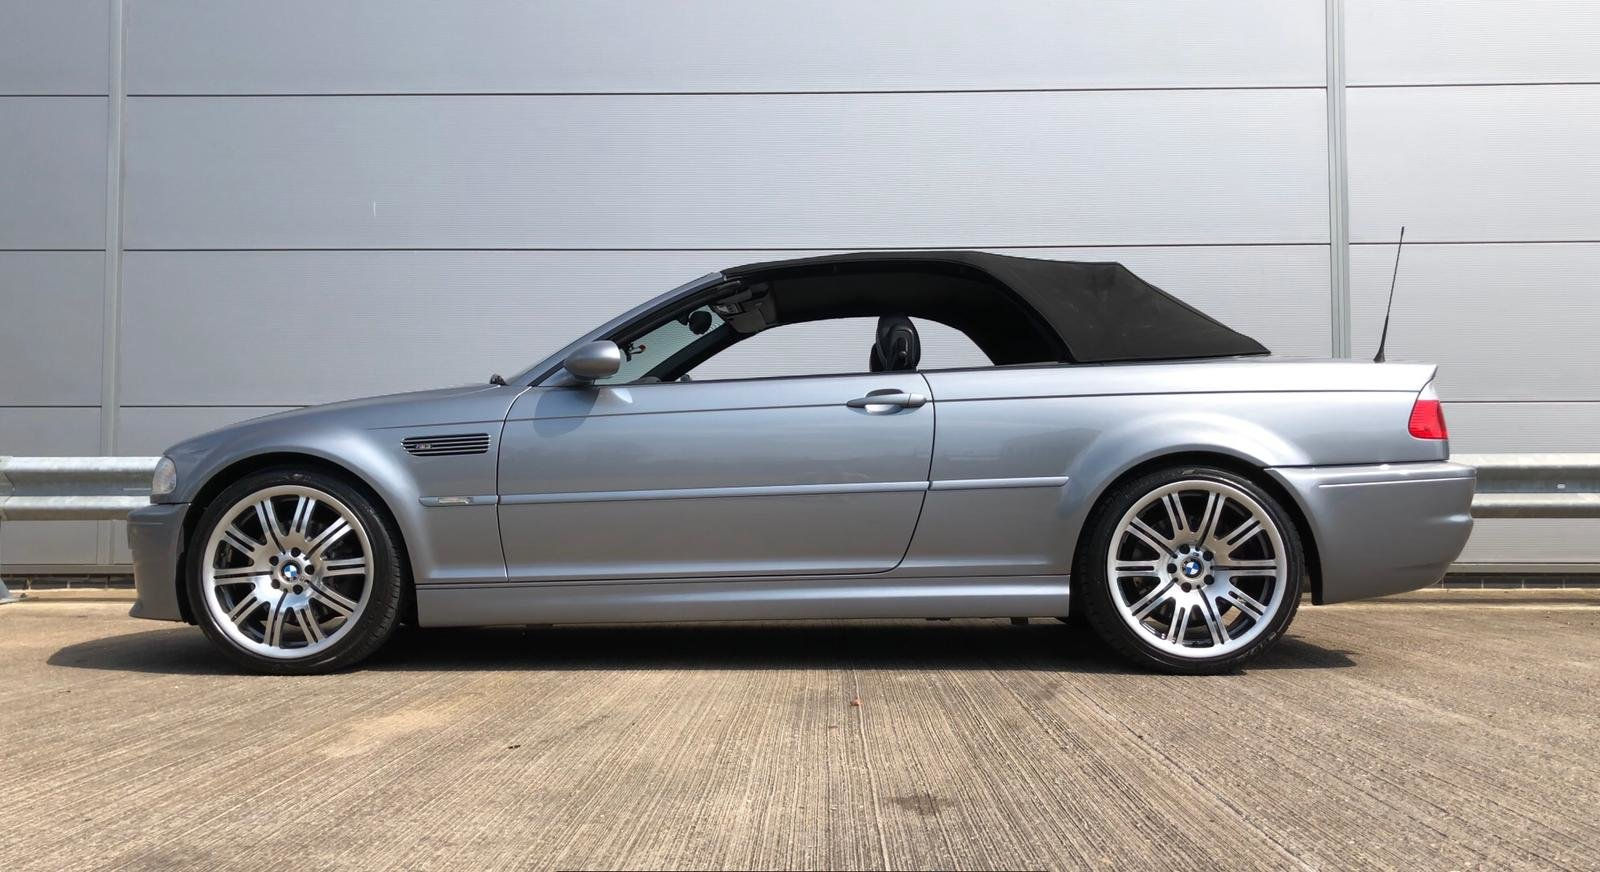 2006 Bmw m3 (low milage + hardtop) For Sale (picture 5 of 6)